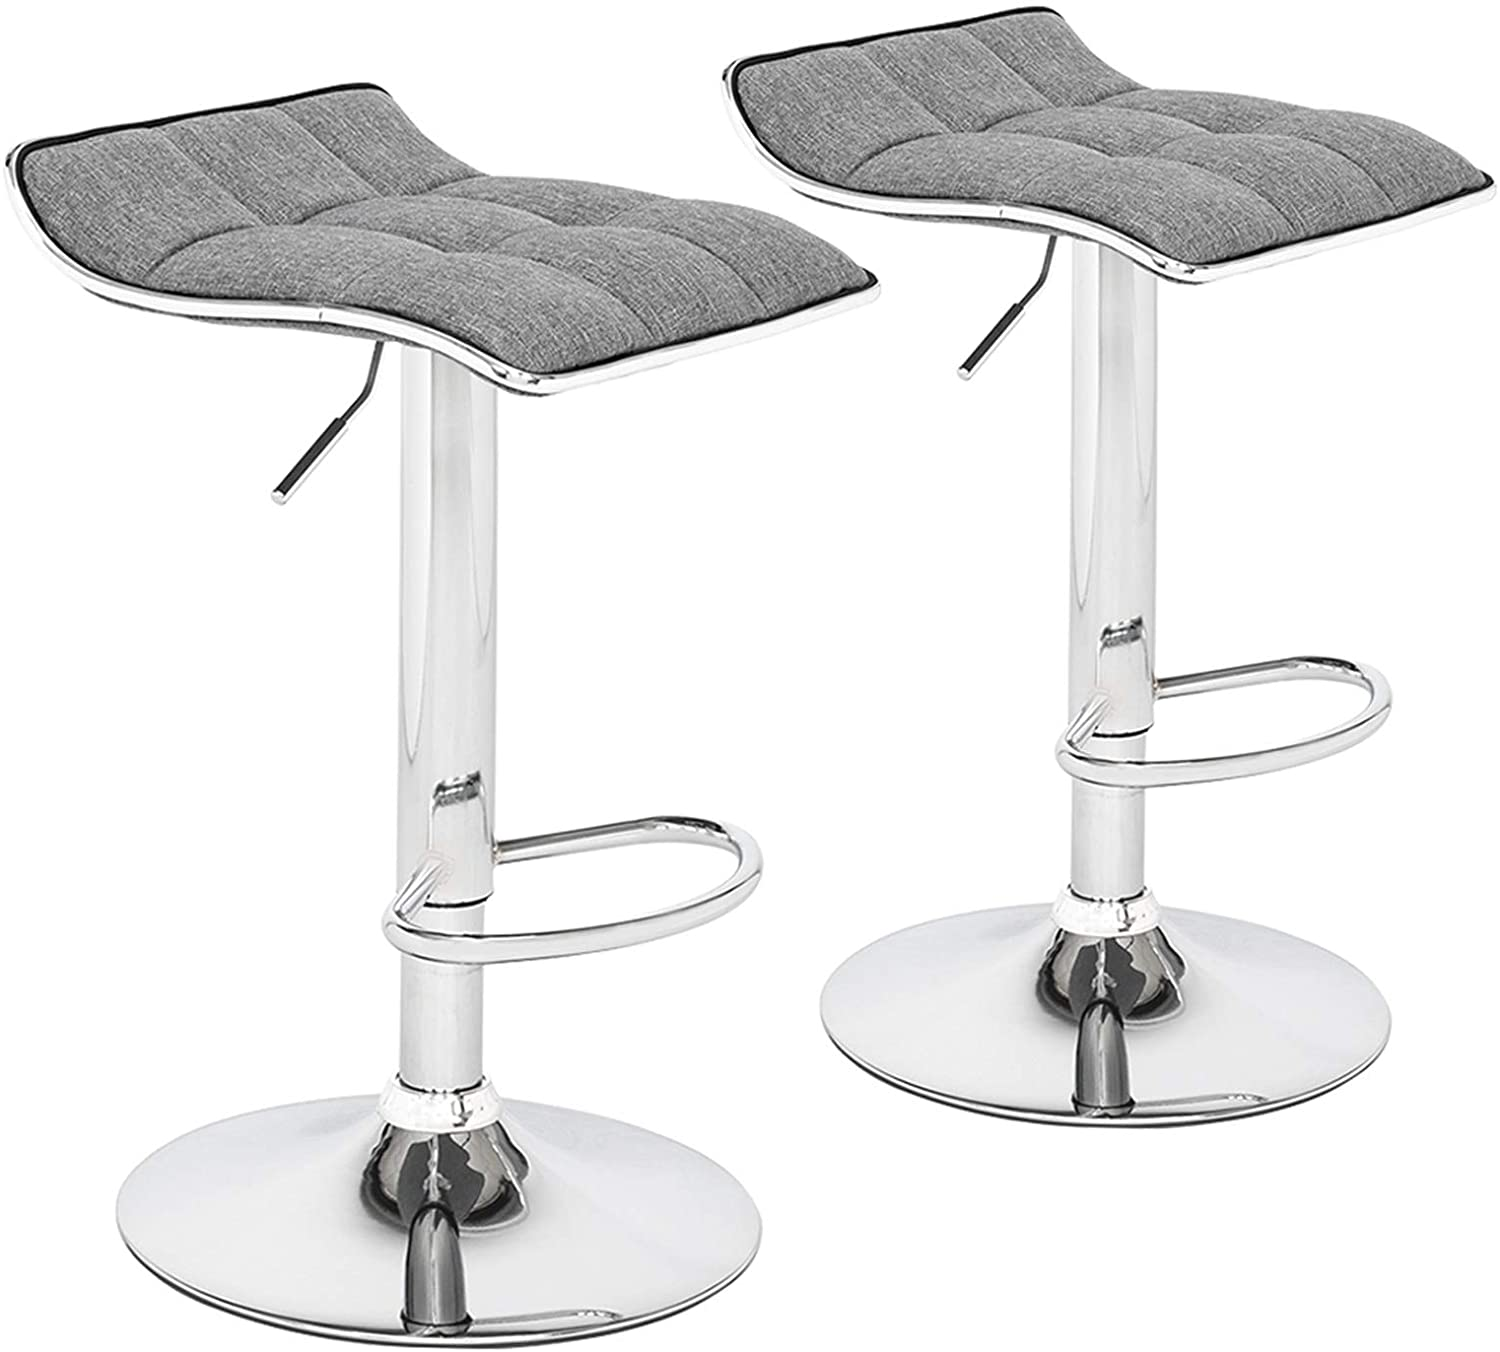 Soft-Packed Cotton & Linen Fabric Square Board Barstool with Curved Foot/Salon Stool Counter Height Game Chair Patio Bar Stools/Set of 2/Dark Gray